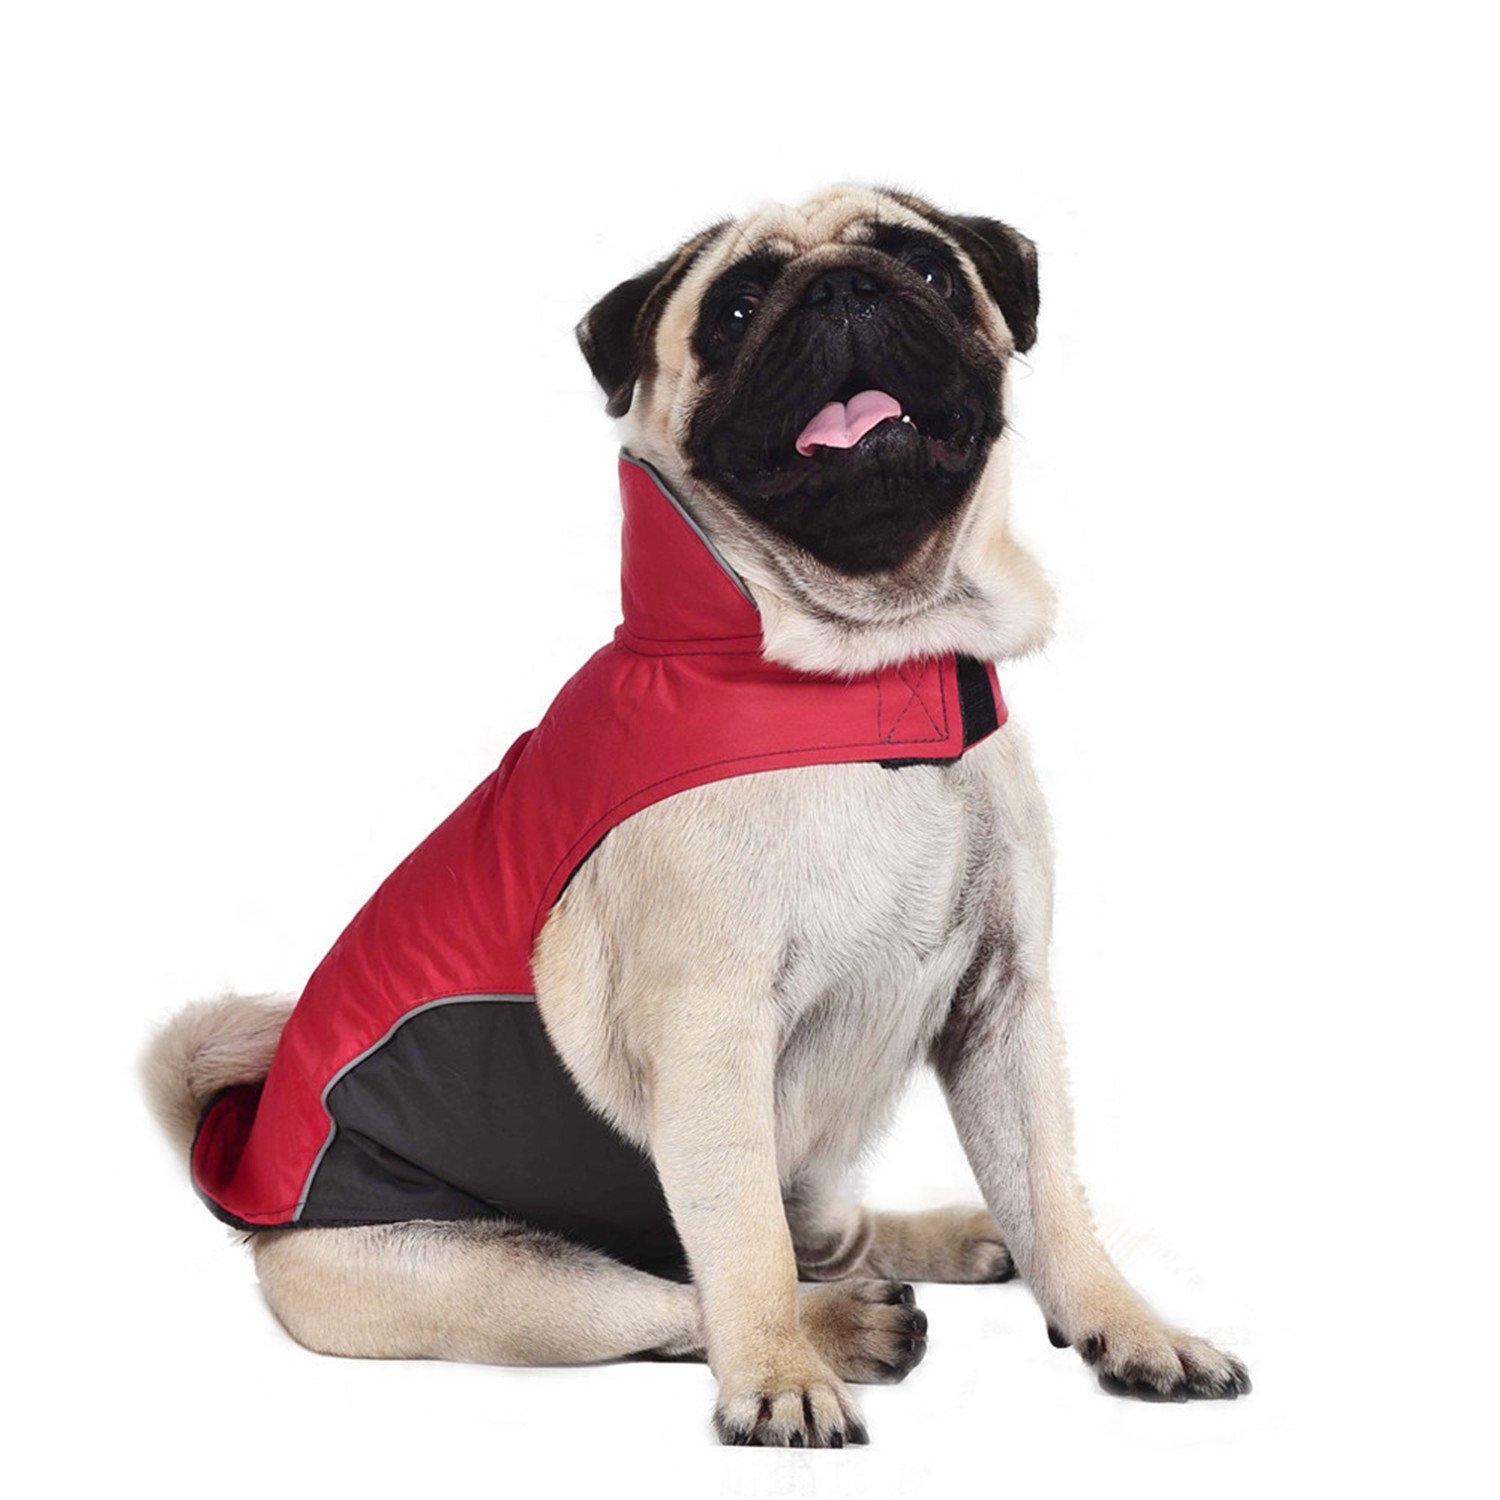 Red 4XL red 4XL HuoGuo Large Dog Clothes Waterproof Winter Dog Raincoat Outdoor Jacket Pet Coat for Pugs Husky Pitbull Fleece Lining S-5XL red 4XL